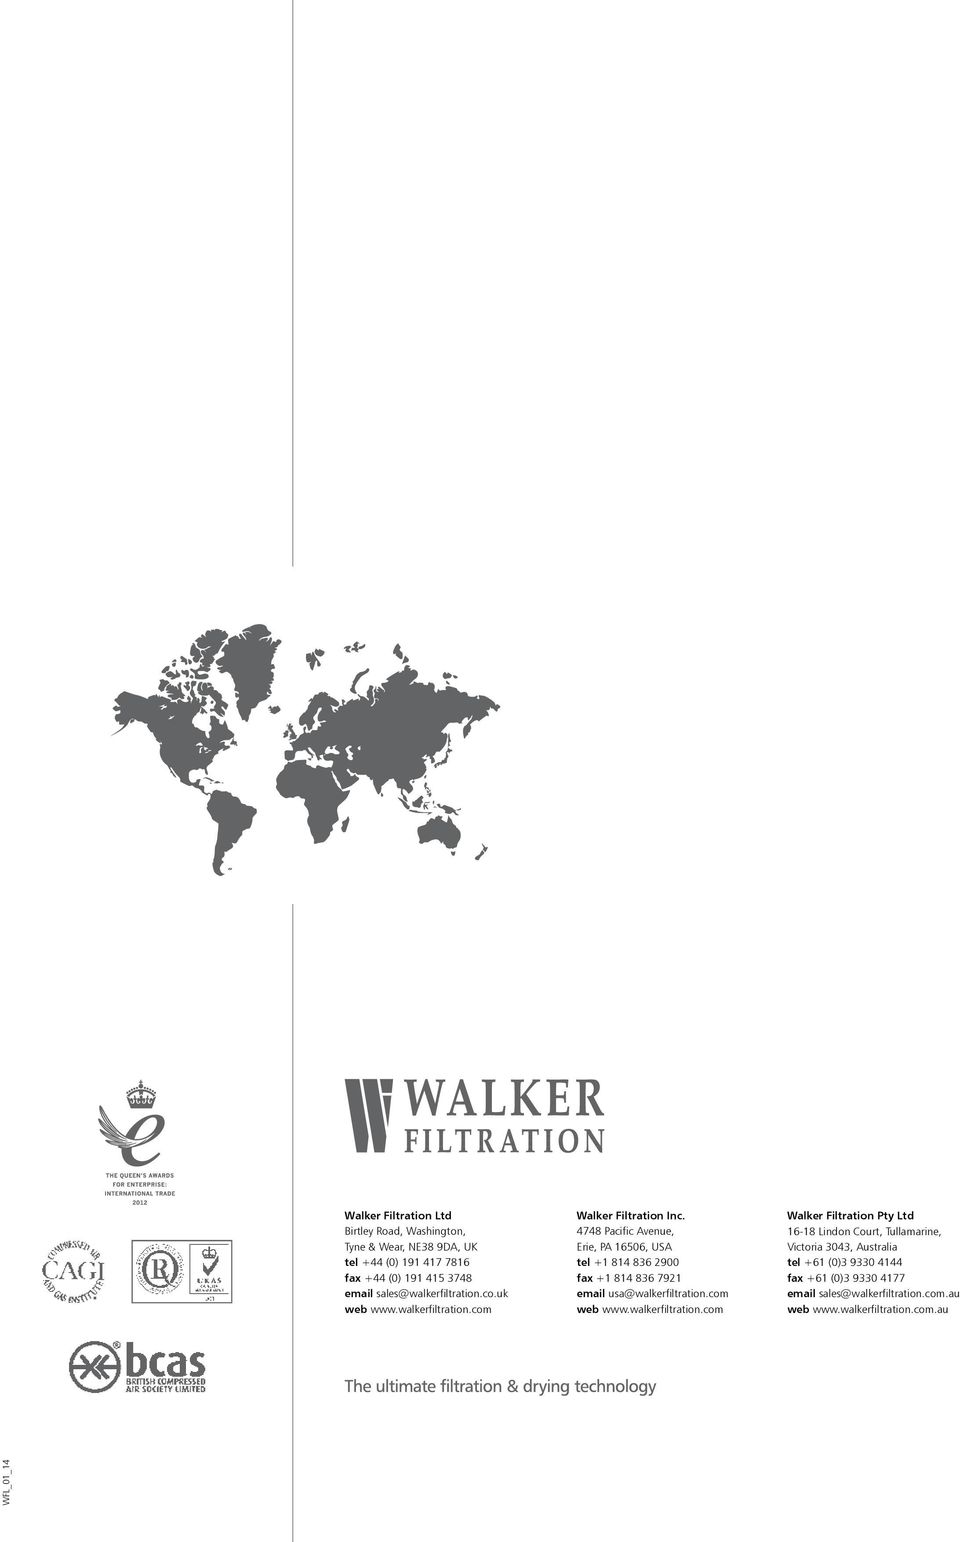 4748 Pacific Avenue, Erie, PA 16506, USA tel +1 814 836 2900 fax +1 814 836 7921 email usa@walkerfiltration.